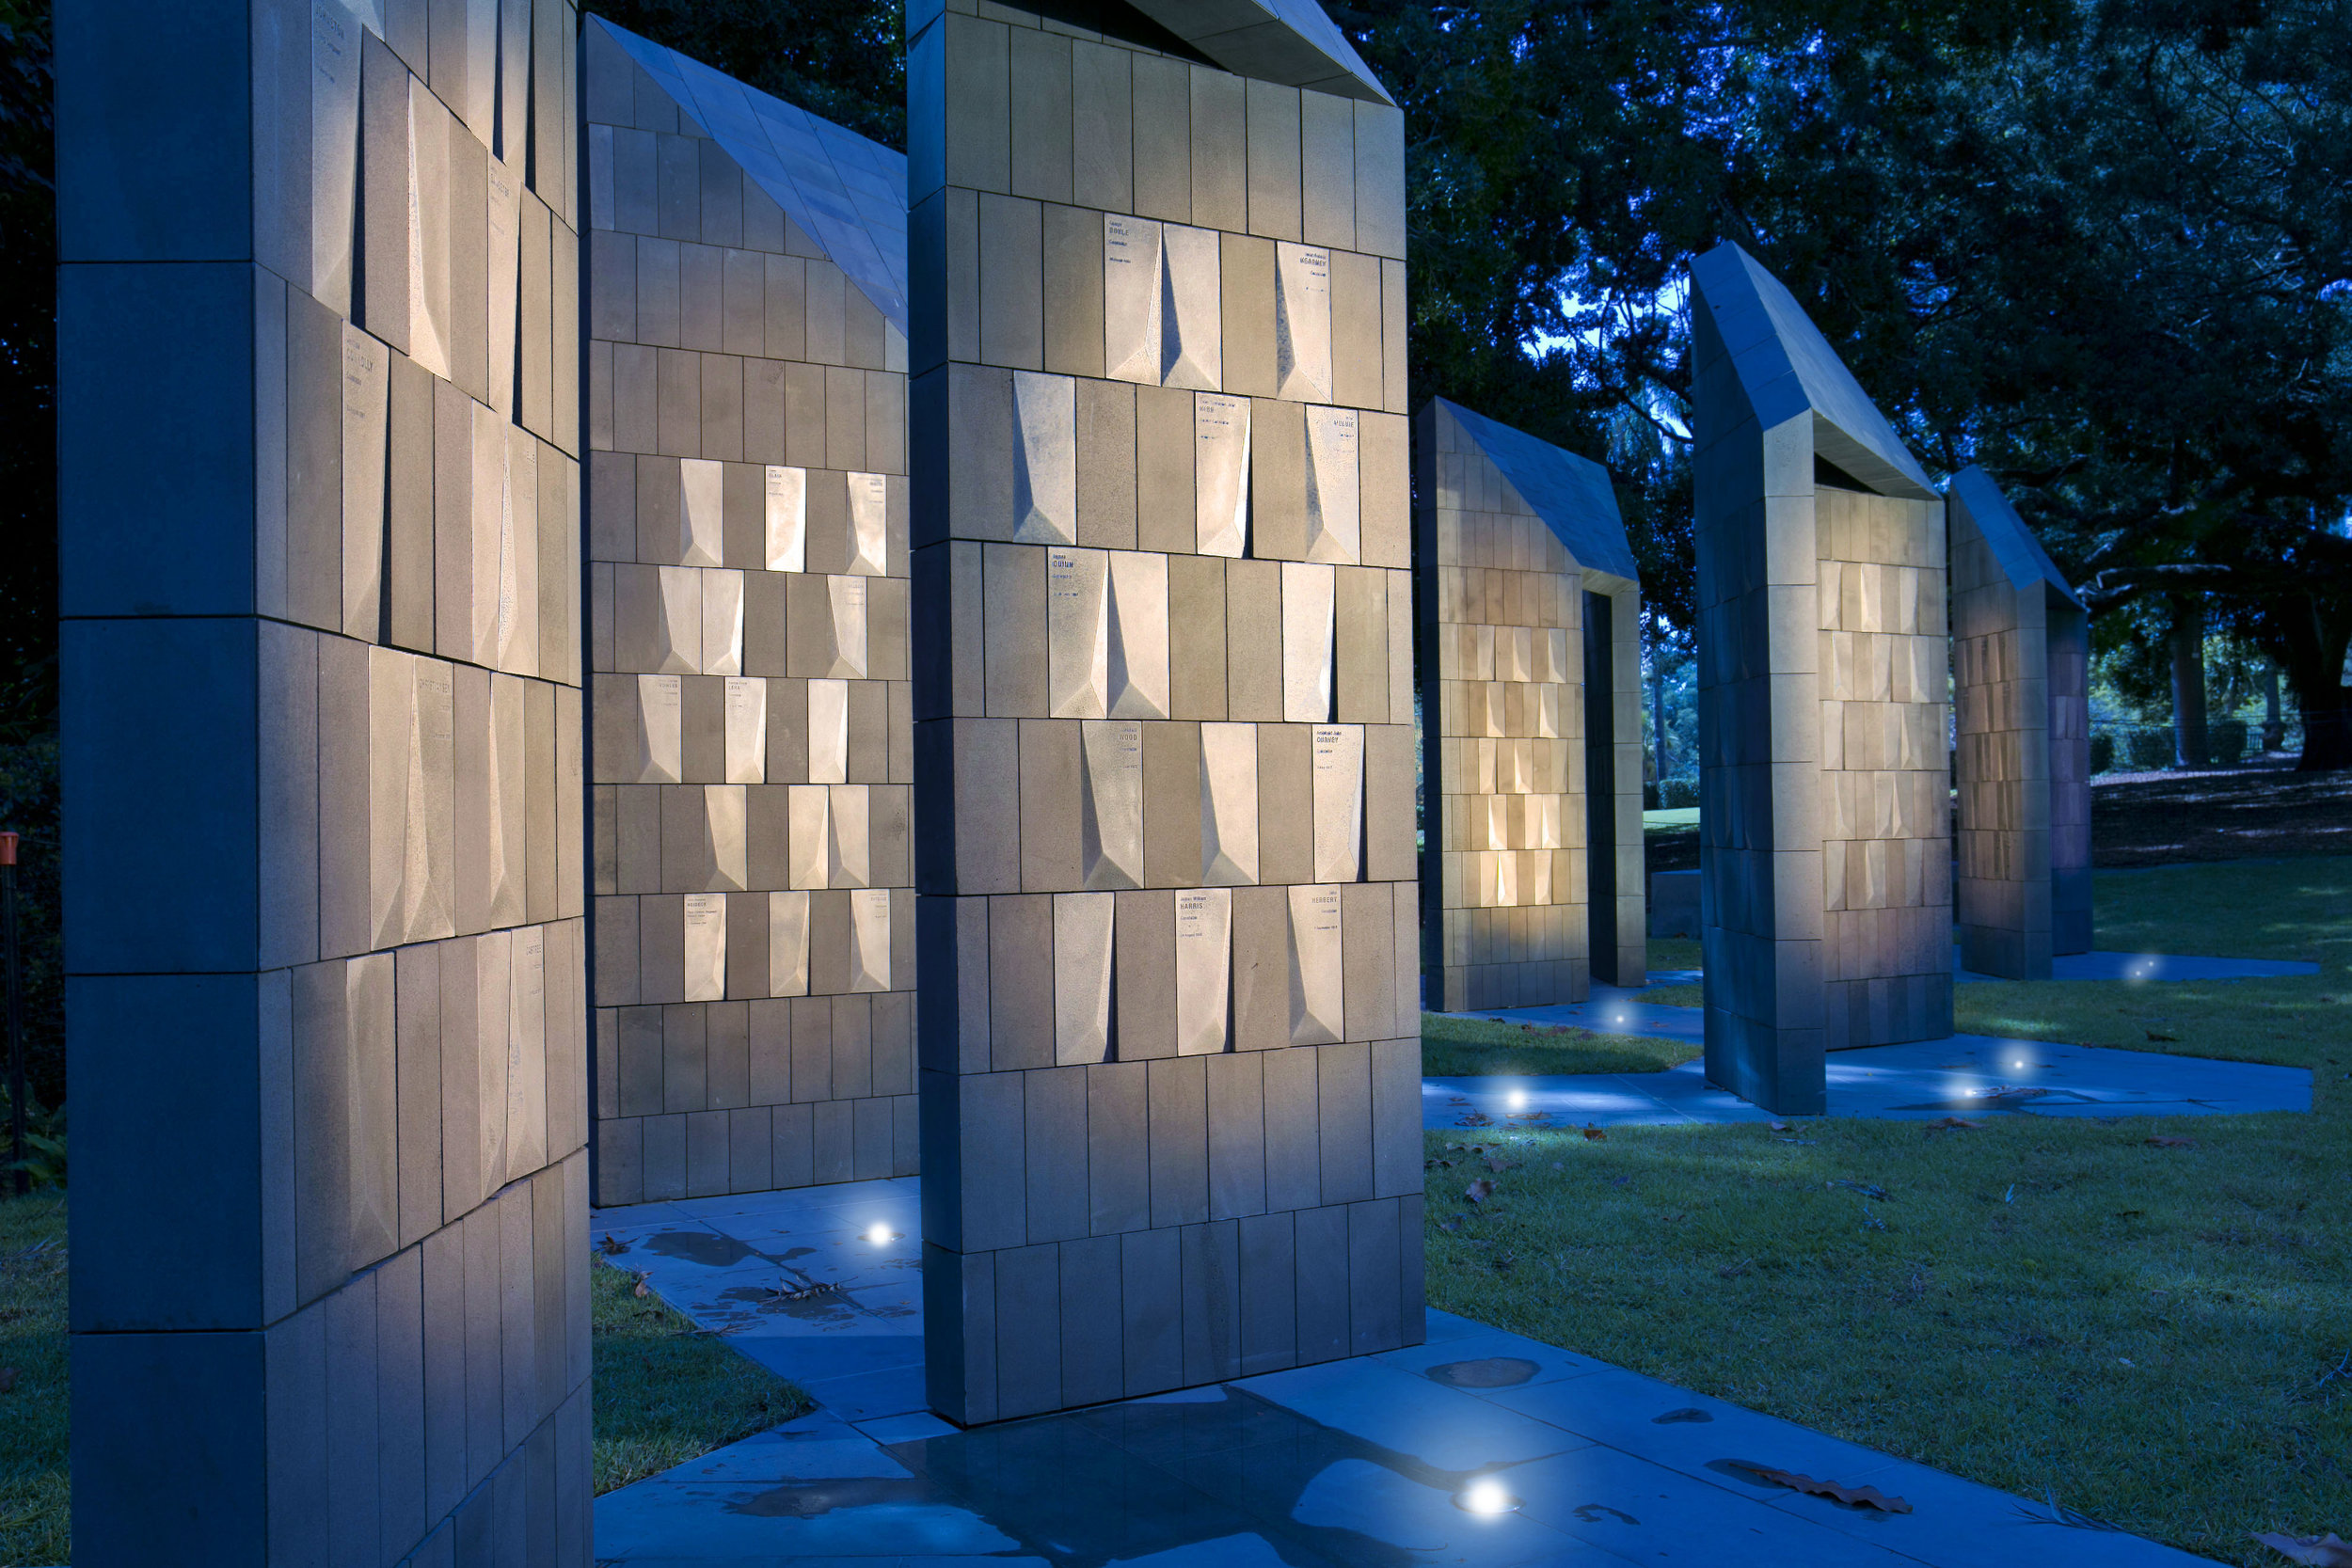 Queensland Police Memorial. Image: Courtesy of UAP